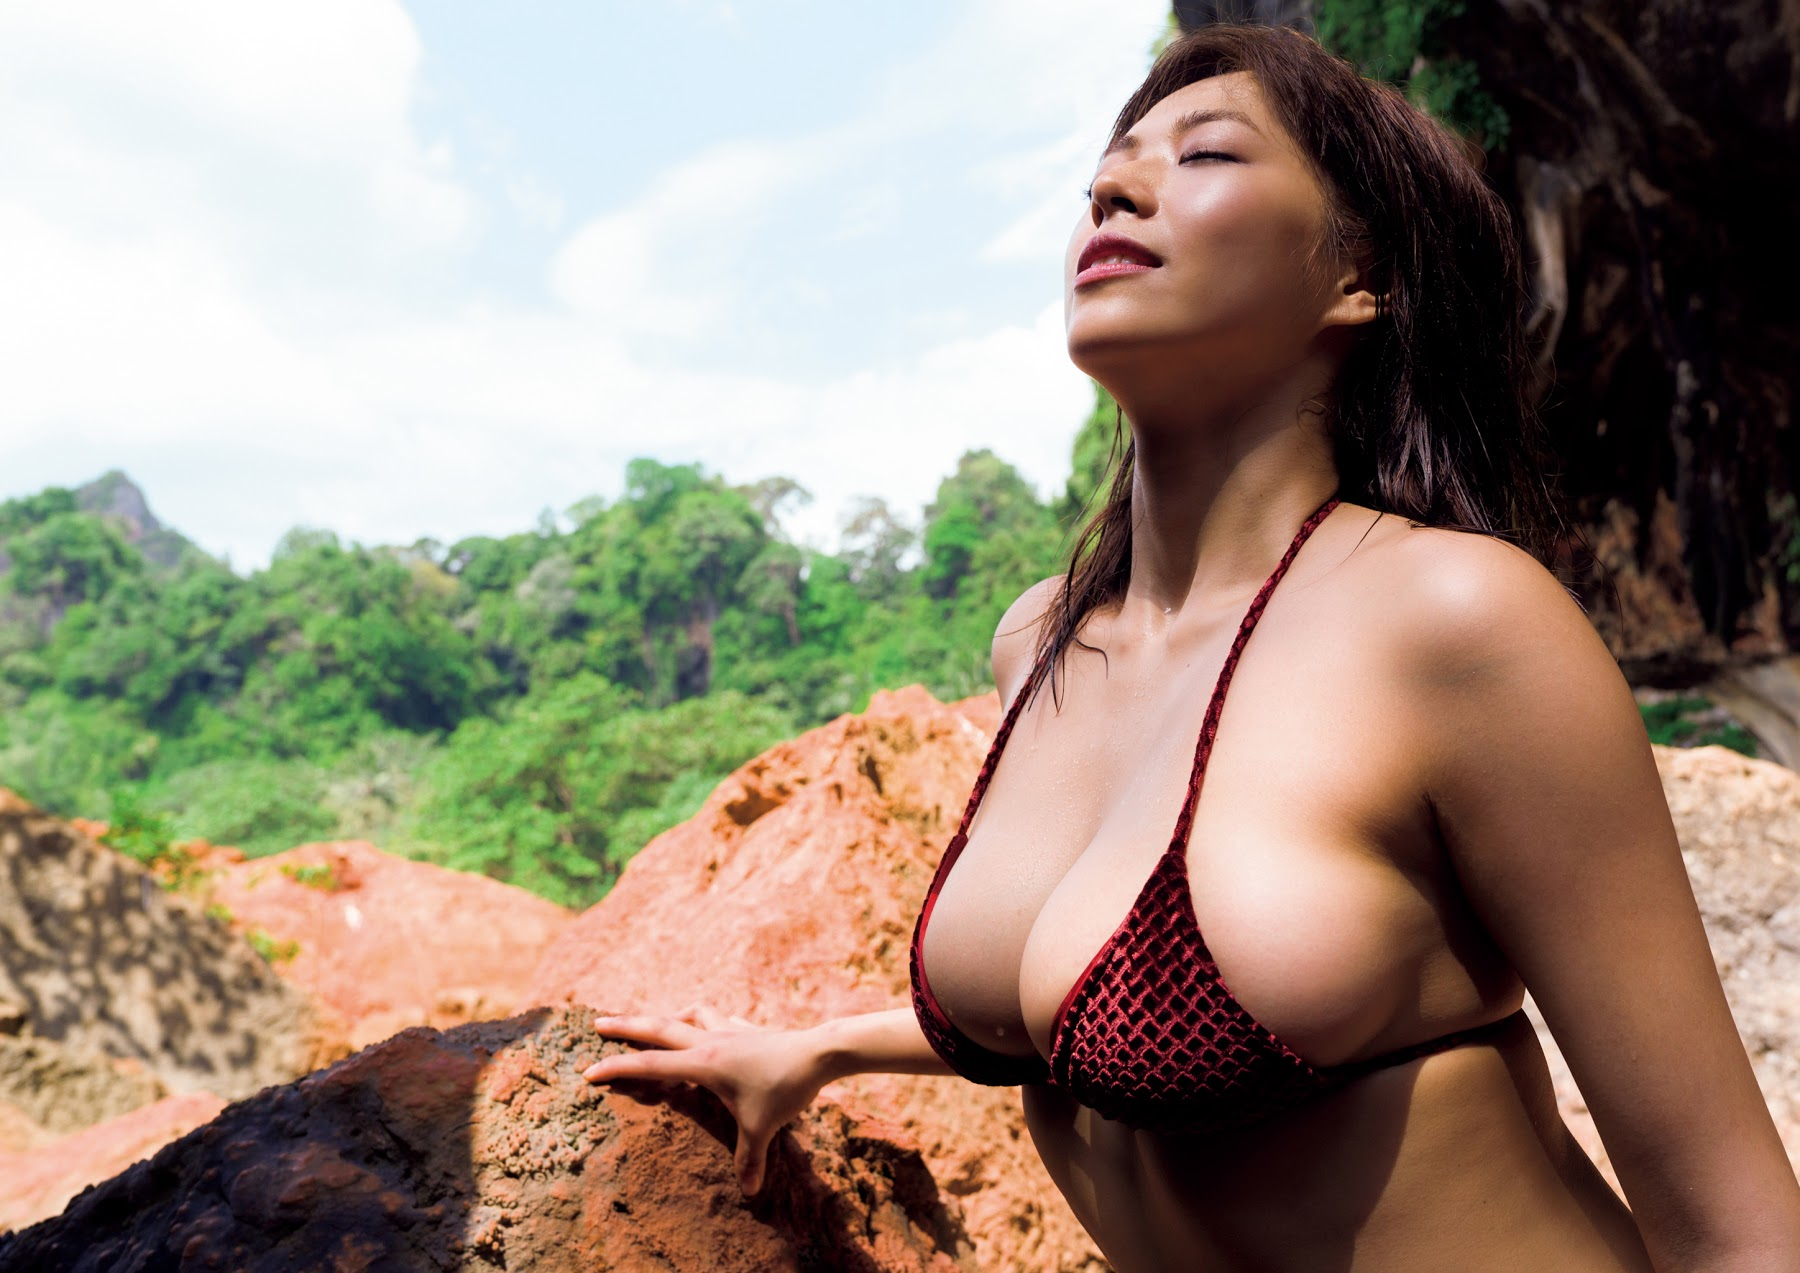 Super body of H cup Minami Wachi 2020 that exposes body and mind in tropical Thailand115